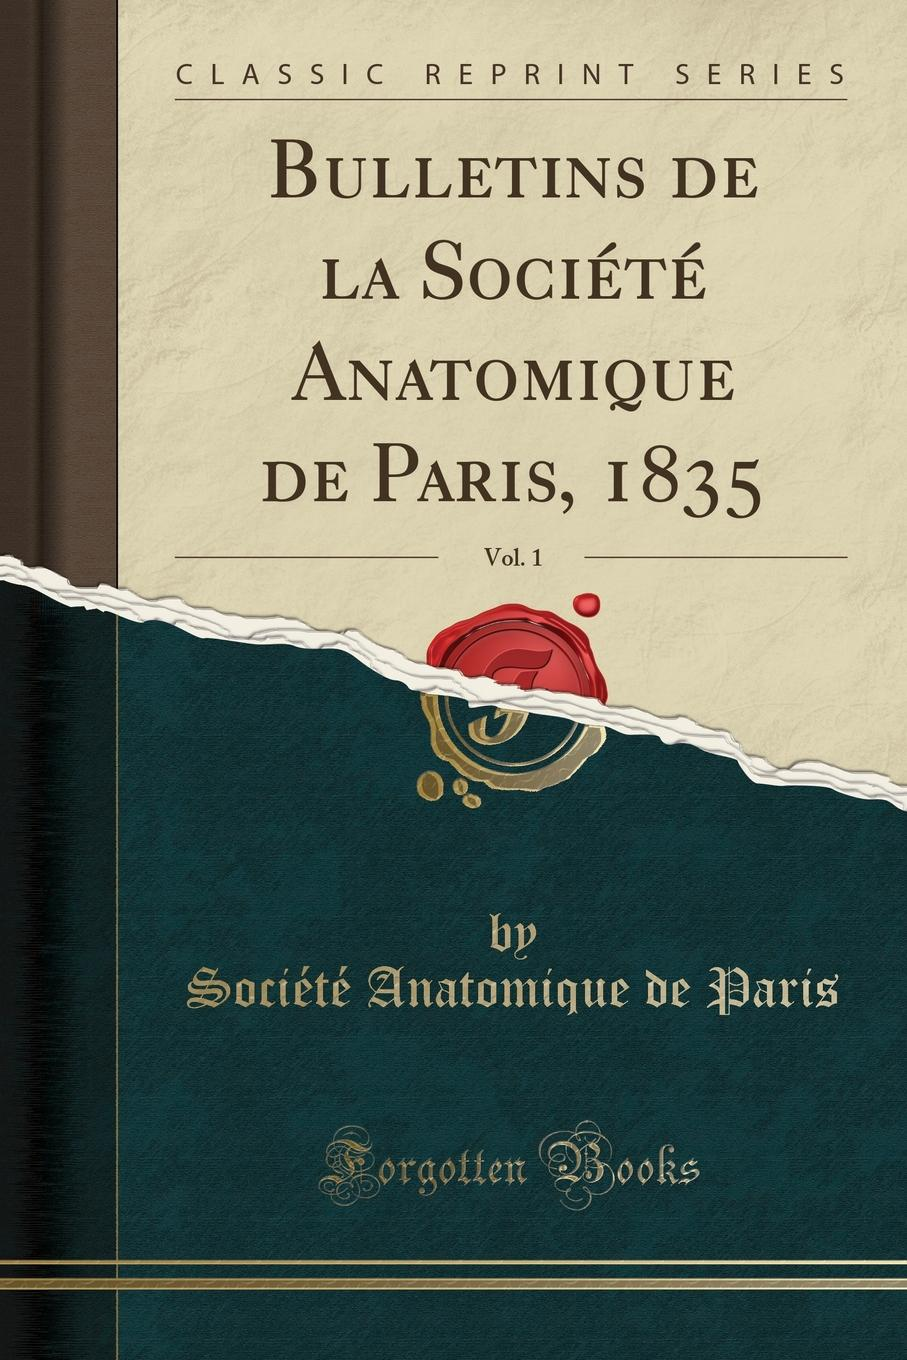 Société Anatomique de Paris Bulletins de la Societe Anatomique de Paris, 1835, Vol. 1 (Classic Reprint)